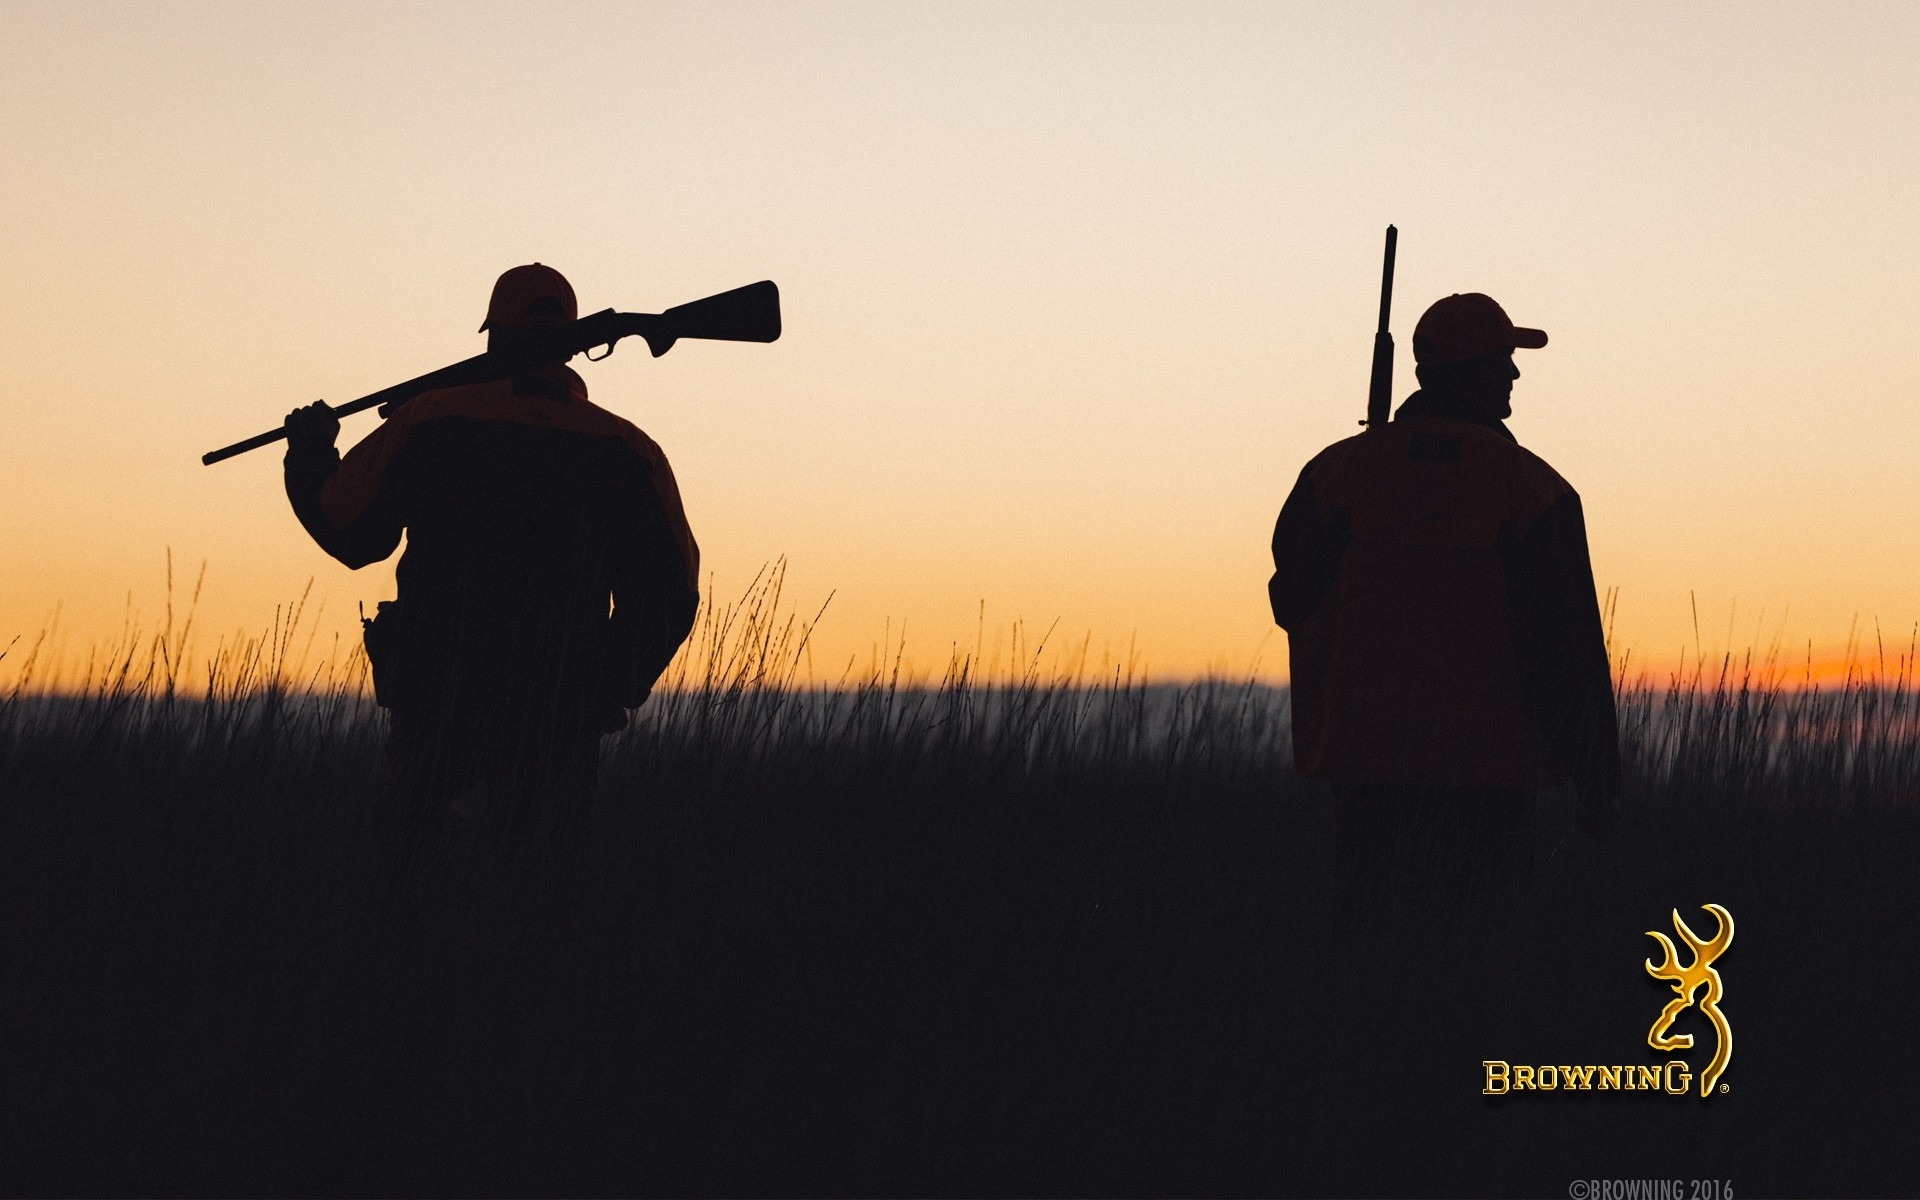 Browning wallpaper camo 53 images - Browning screensavers ...